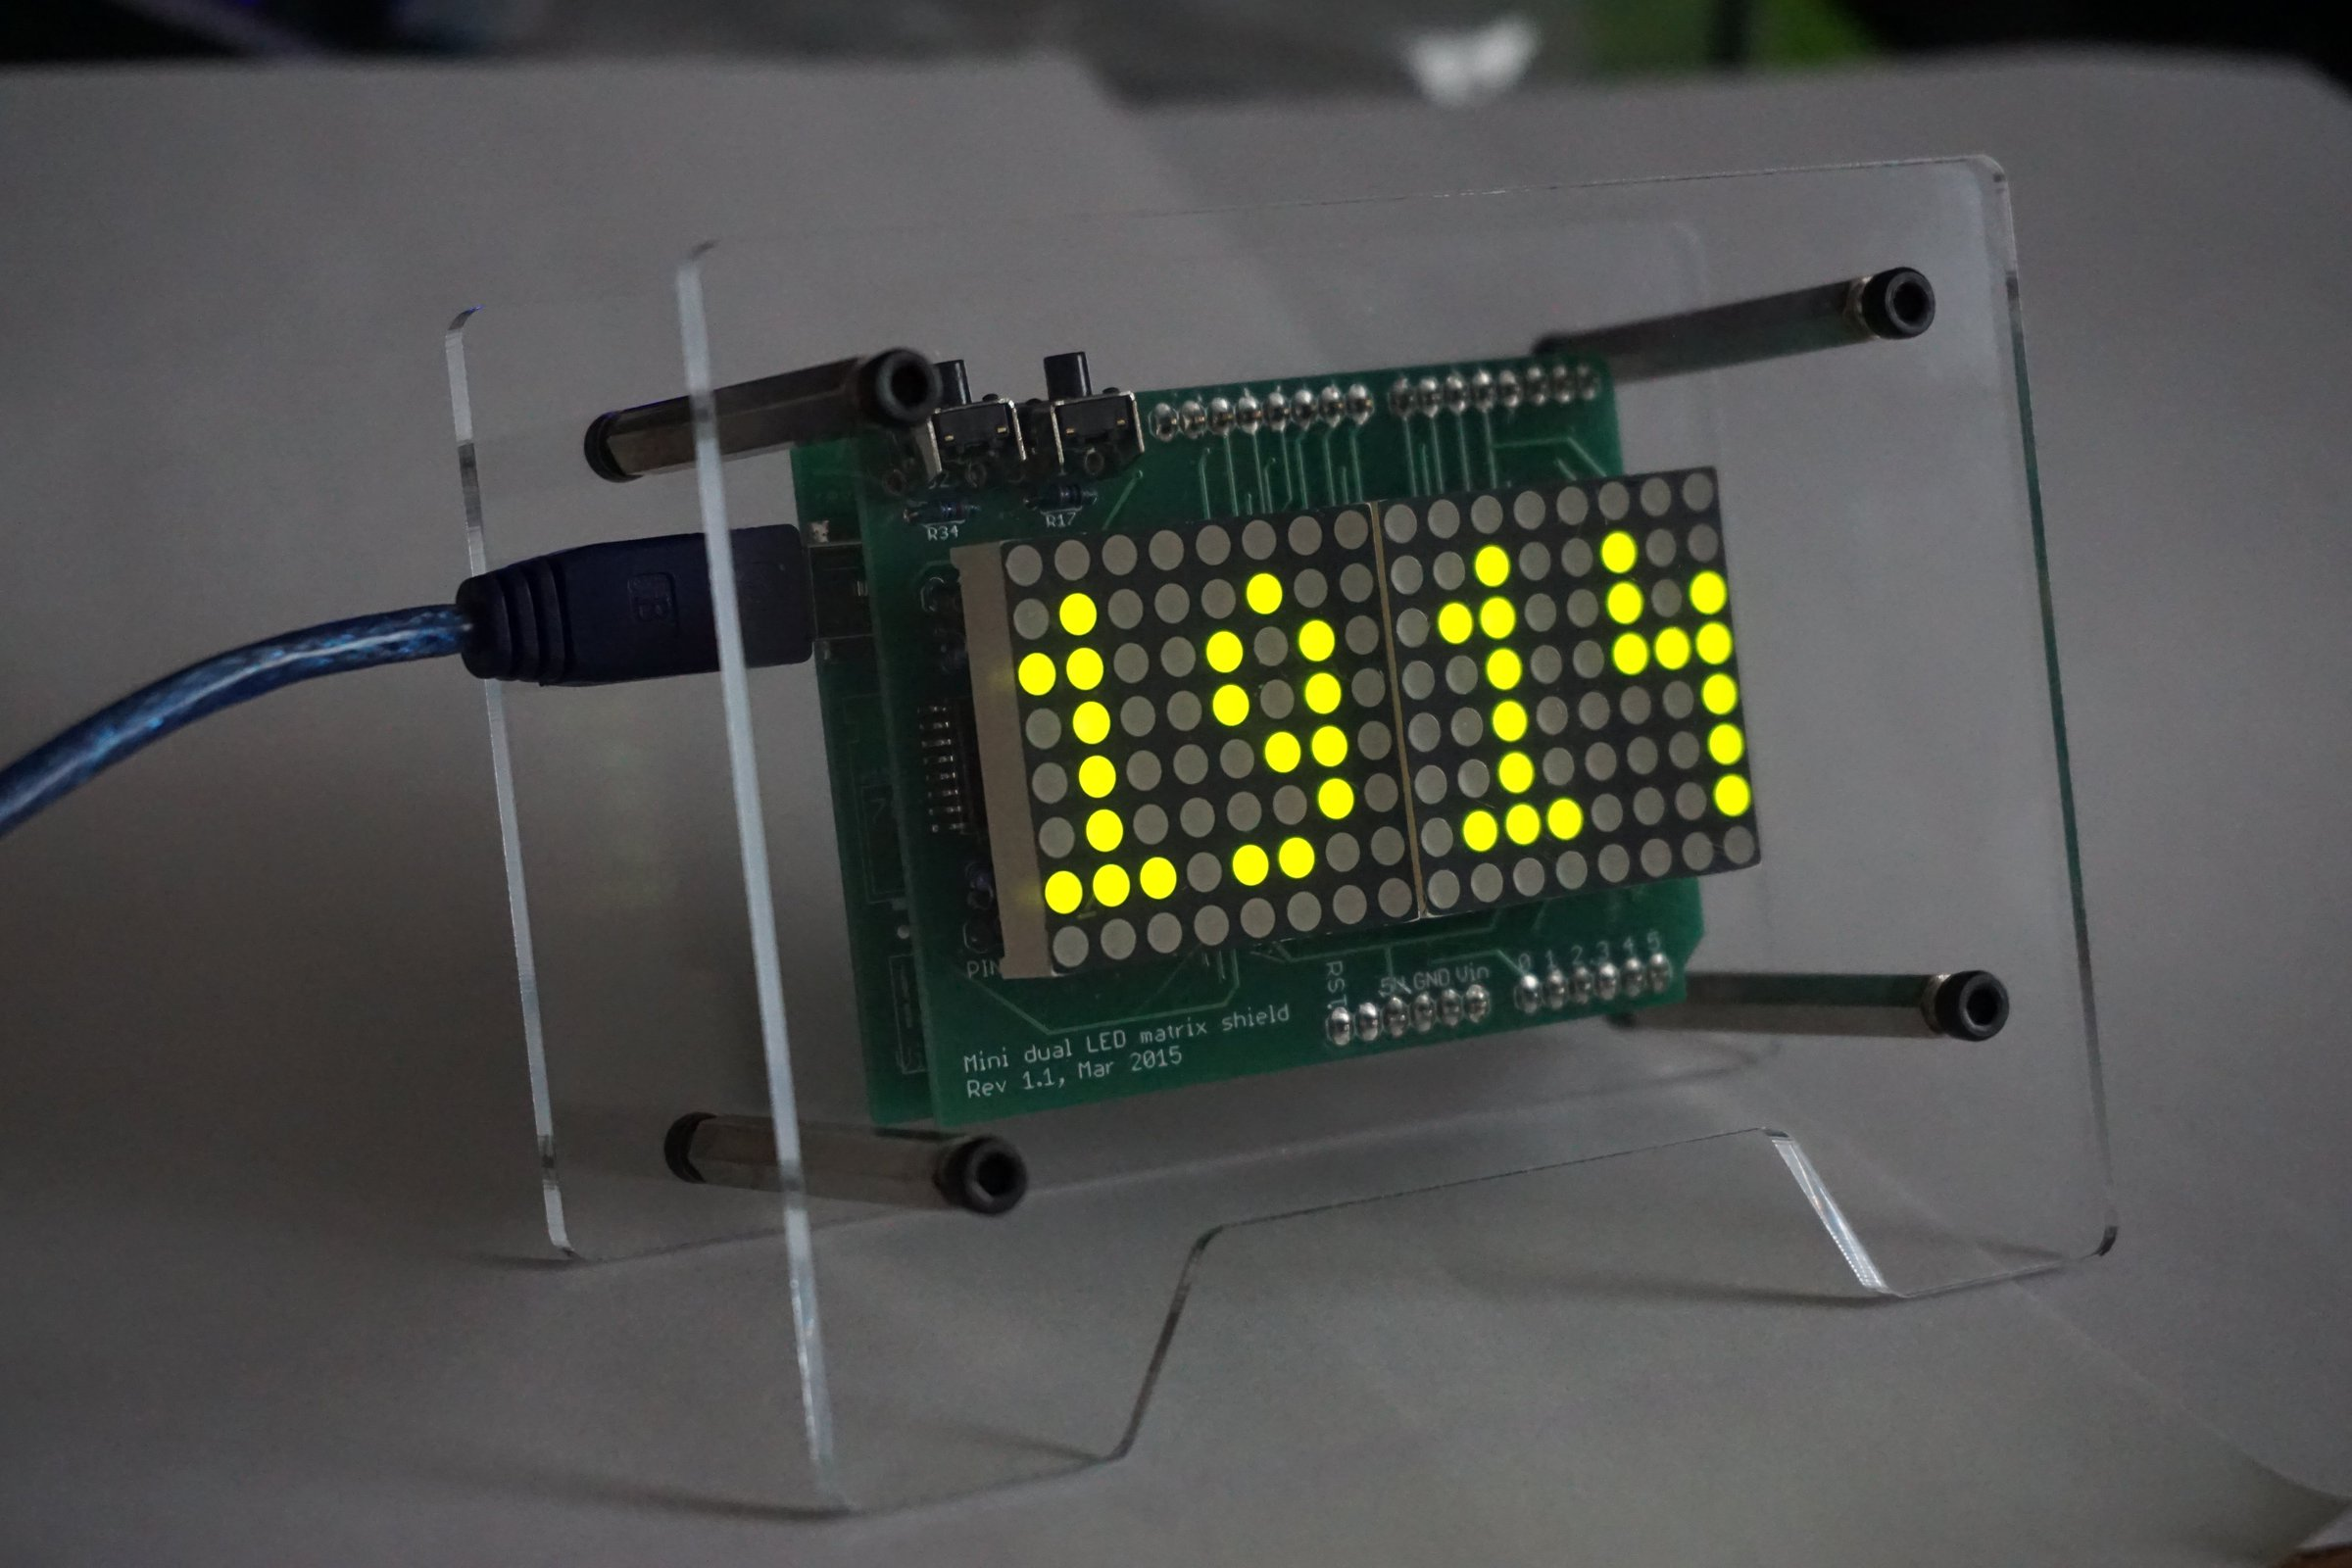 Basic Led Matrix Clock From Florinc On Tindie Using Pic Microcontroller 1